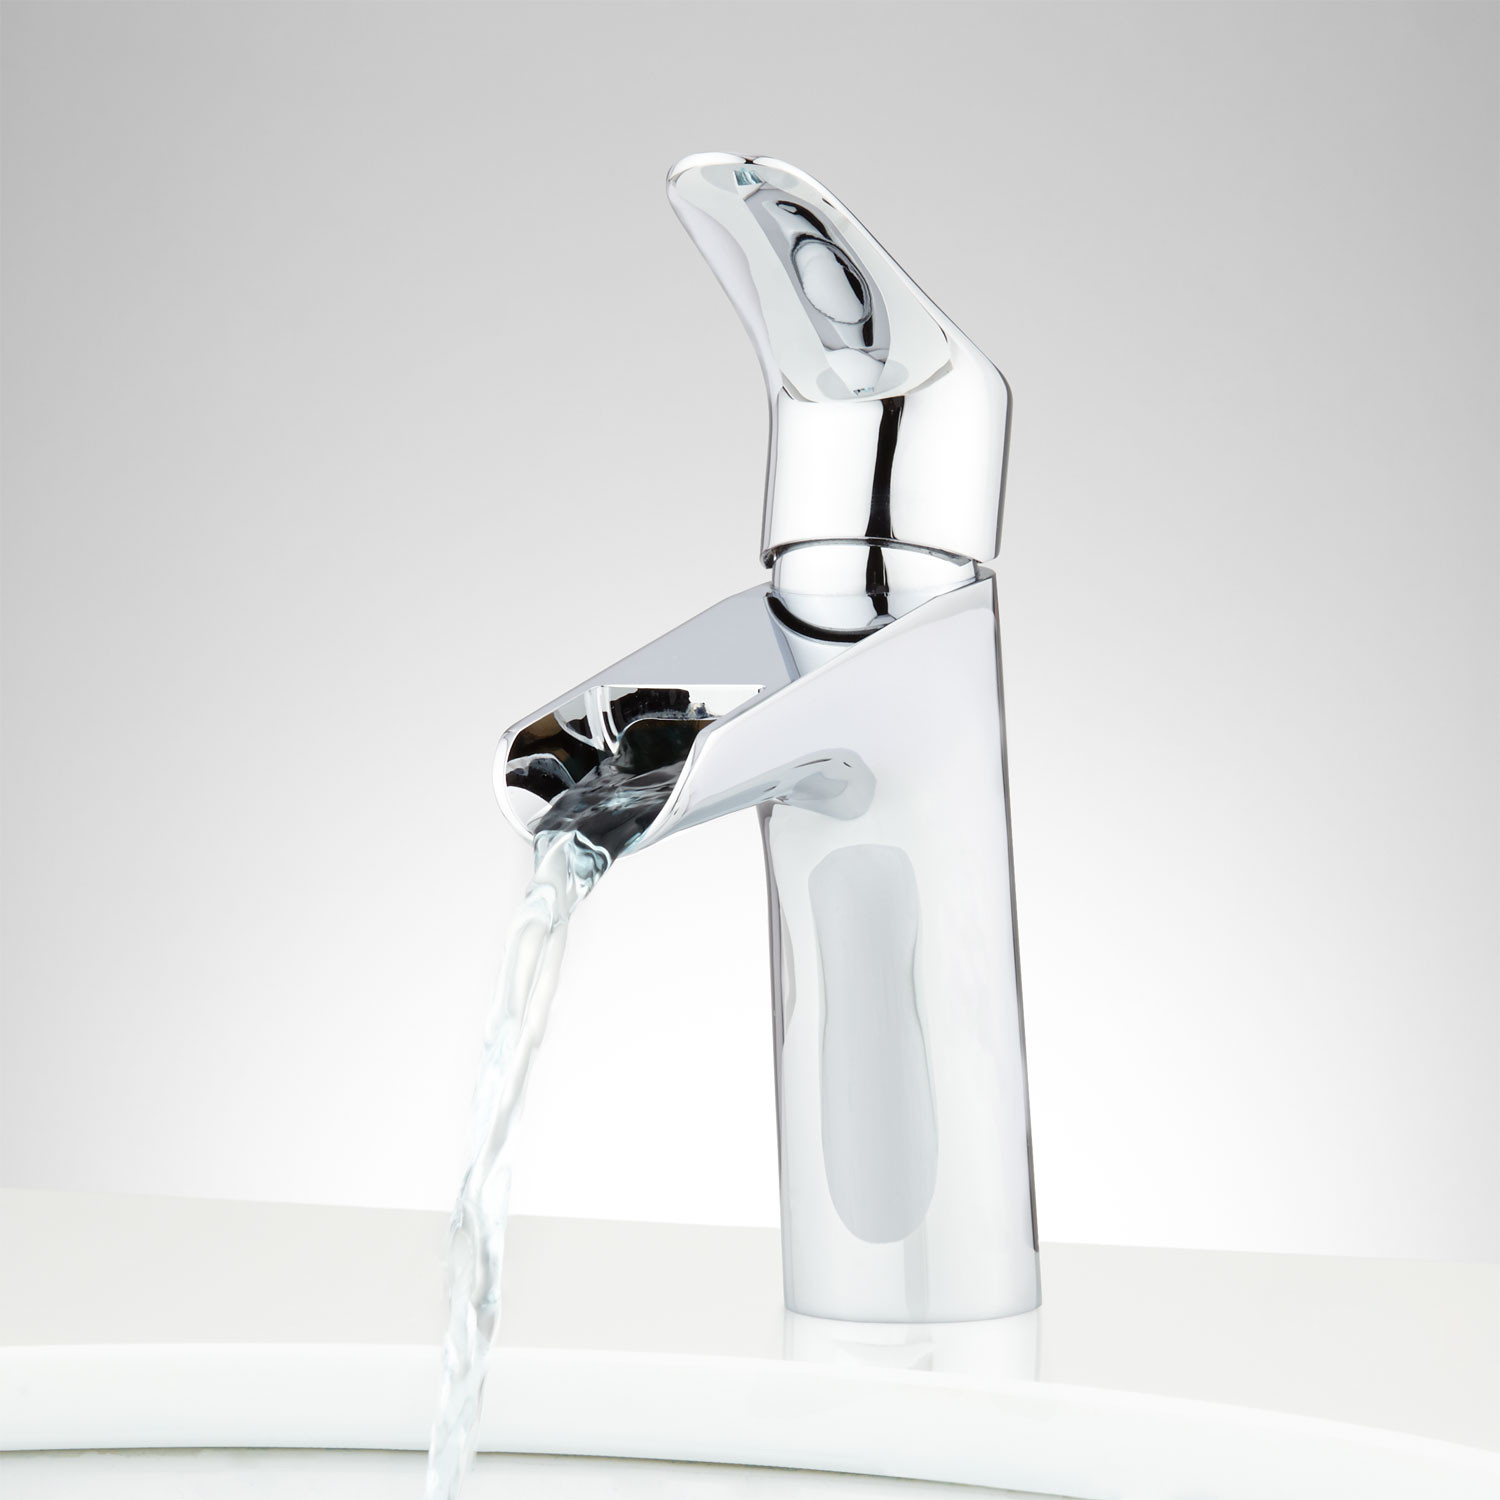 Best ideas about Waterfall Bathroom Faucet . Save or Pin Kopren Single Hole Waterfall Faucet Single Hole Faucets Now.